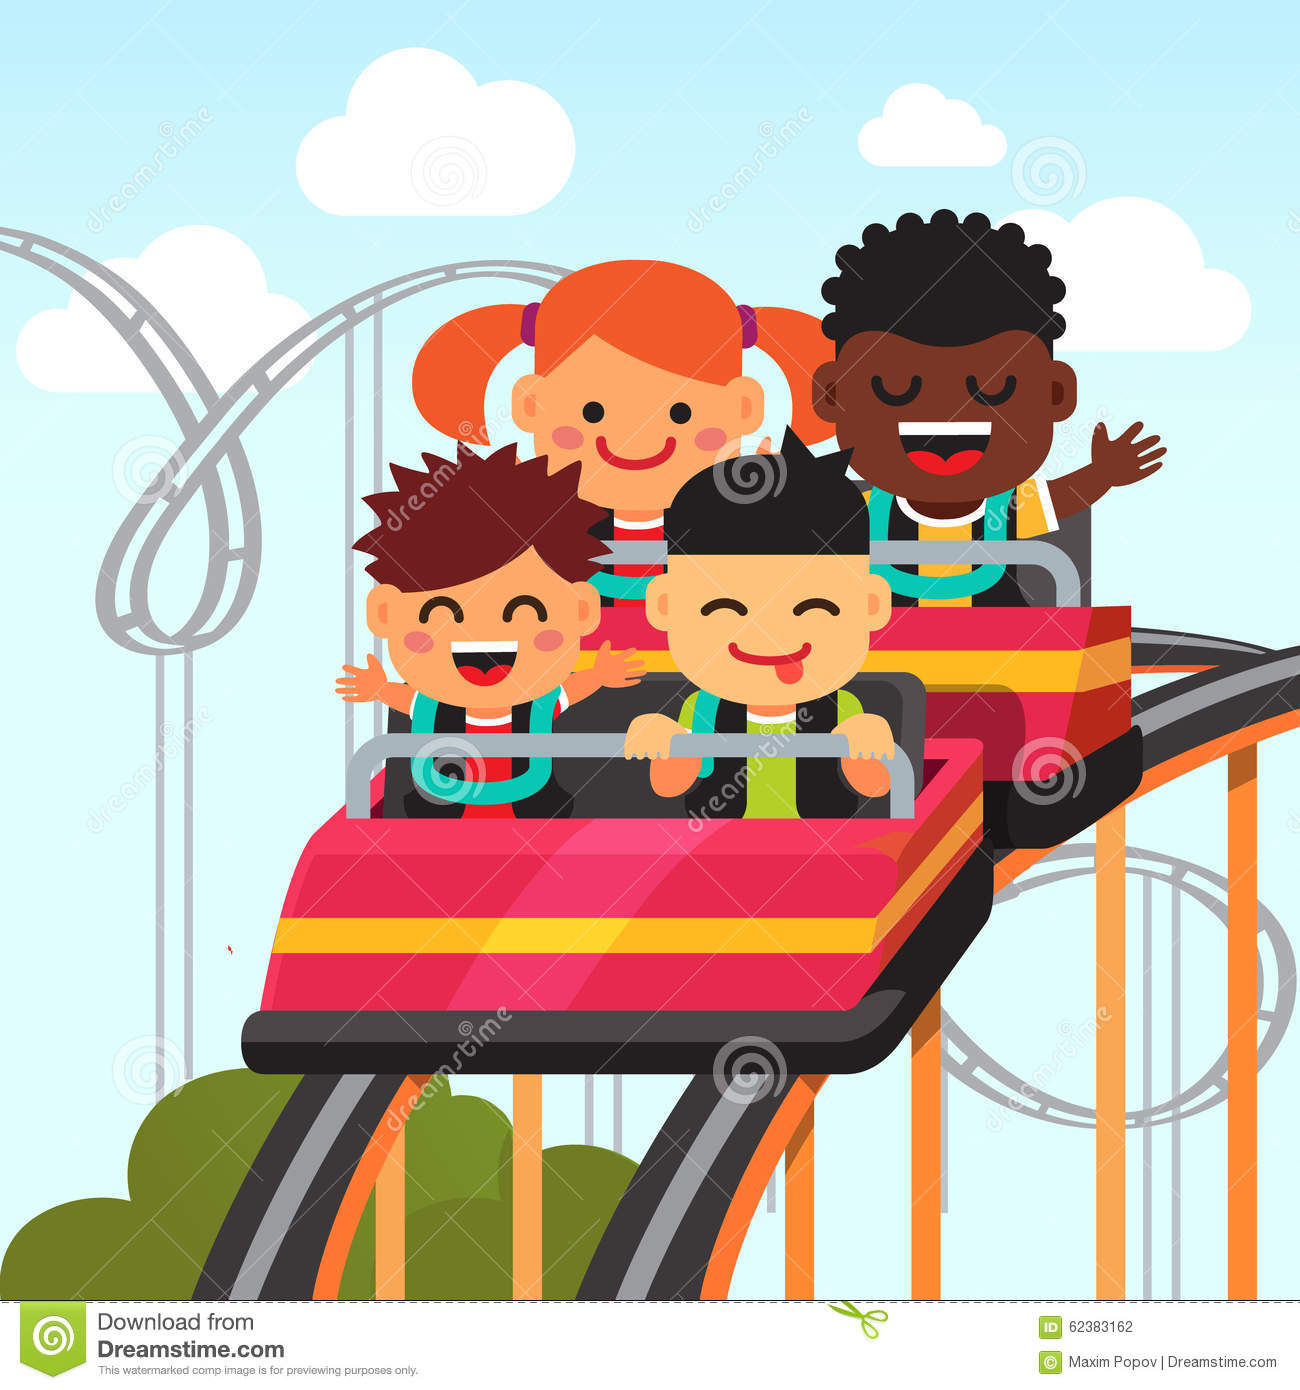 Group Of Smiling Kids Riding Roller Coaster Stock Vector ...